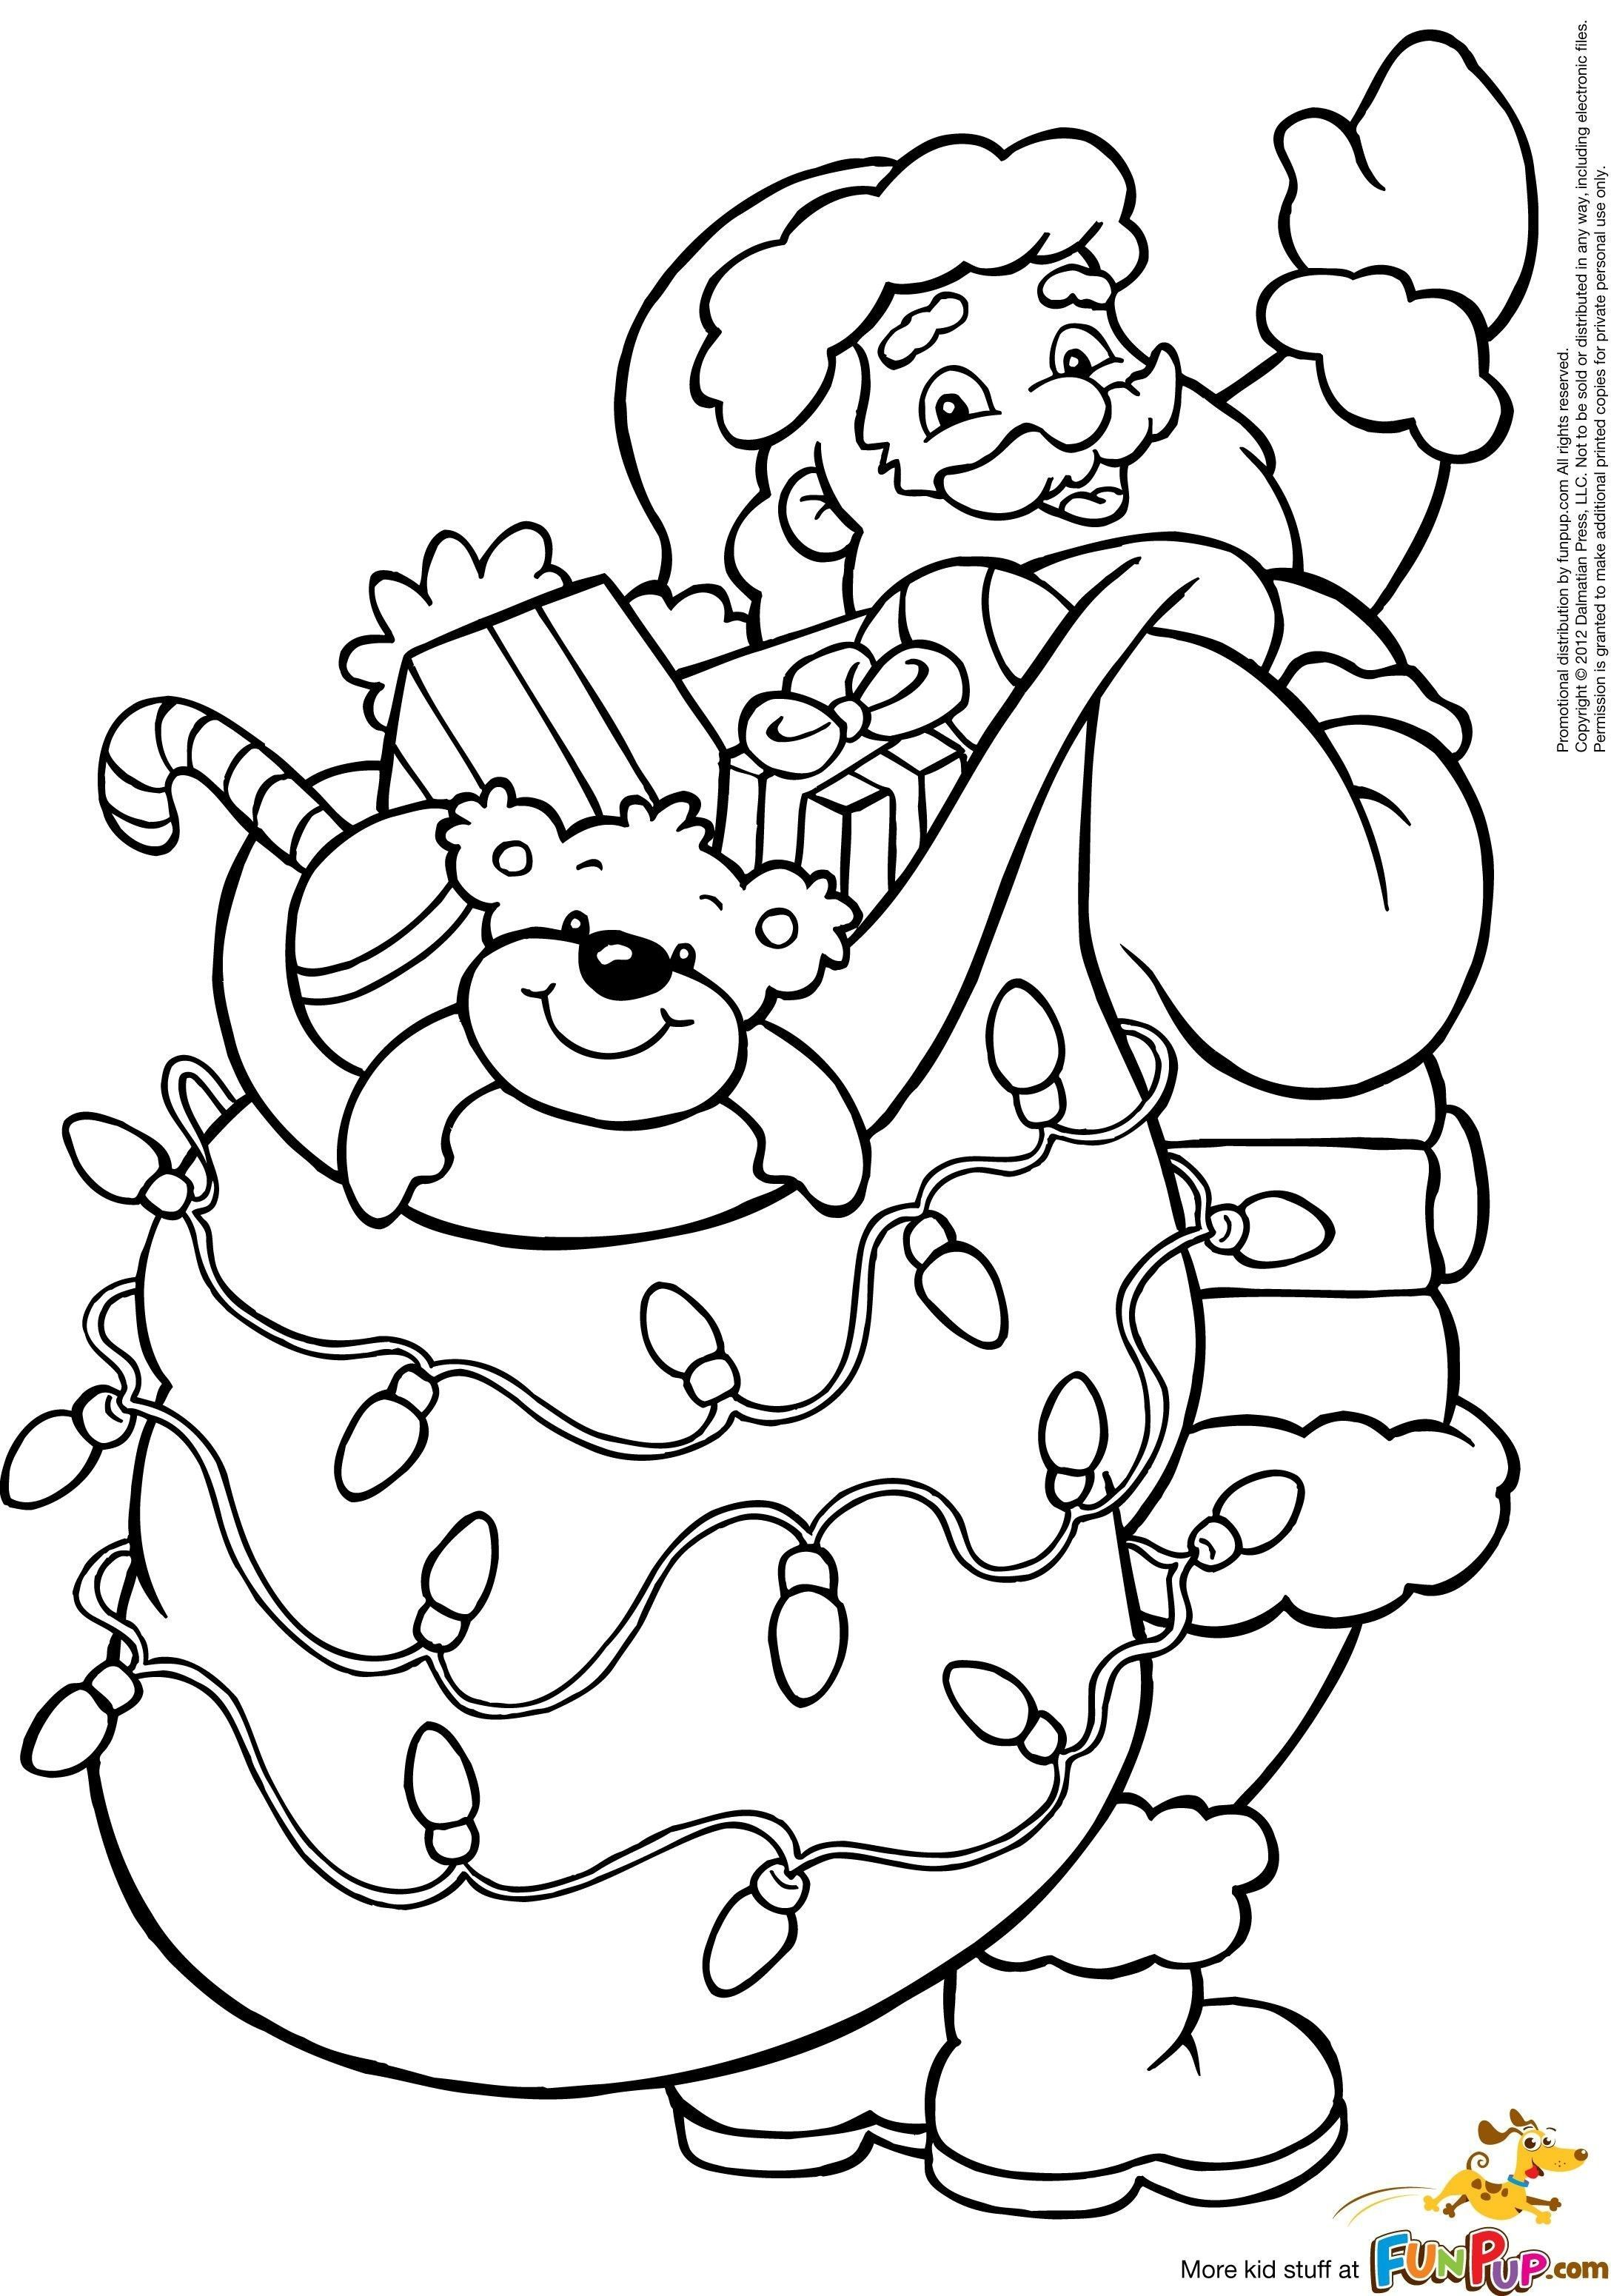 New Father Christmas Colouring Pages Coloring Coloringpages Coloringpagesforkids Color Coloriage Noel Dessin Noel A Imprimer Coloriage Halloween A Imprimer